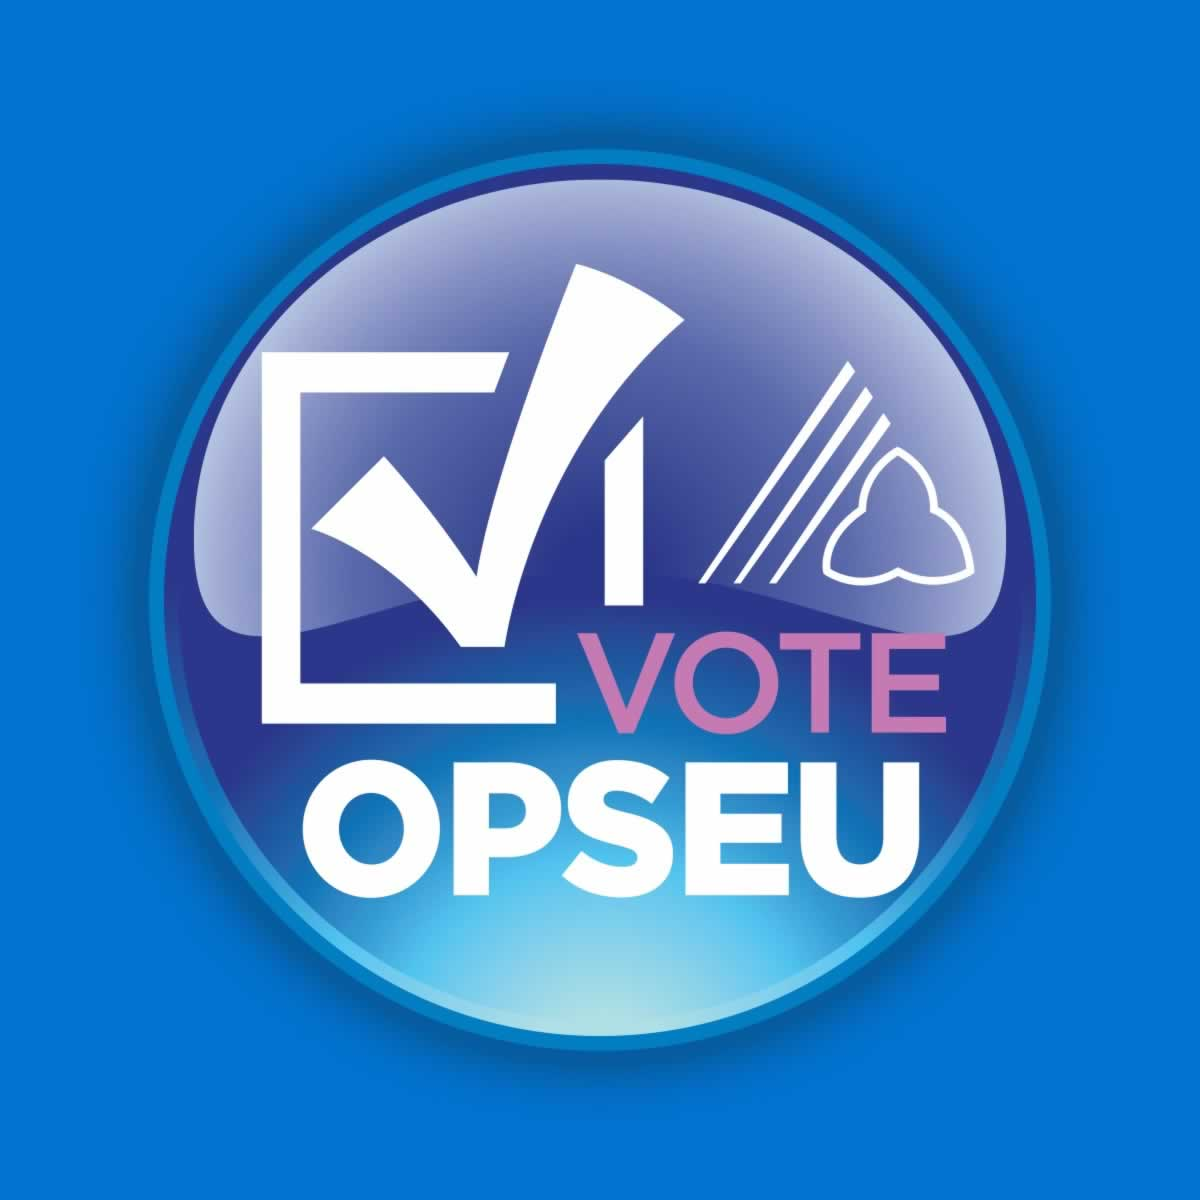 """Lapel button with a check mark and the text """"Vote OPSEU"""""""